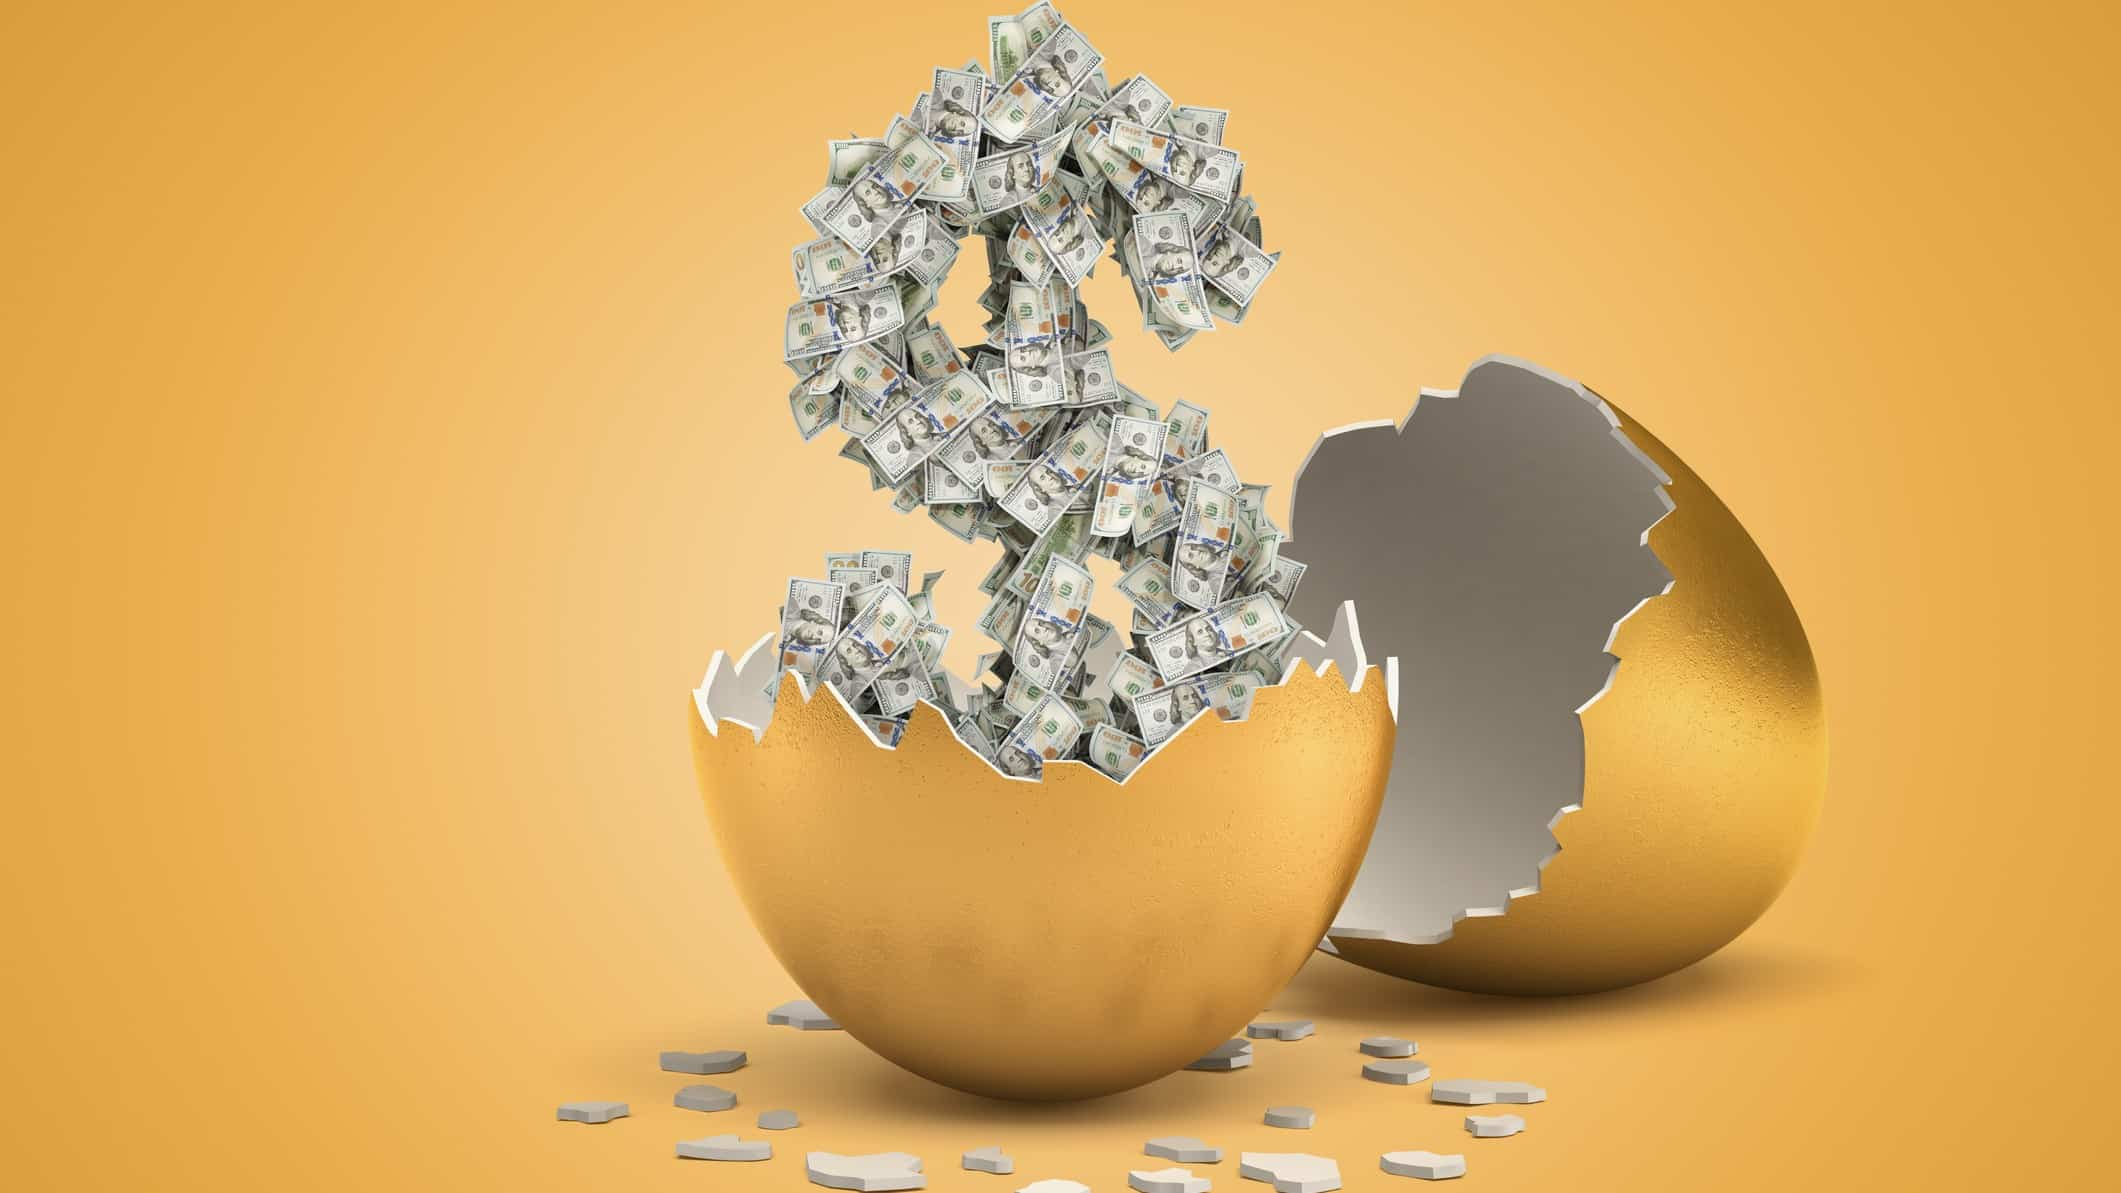 new tech shares represented by US dollars hatching out of golden egg